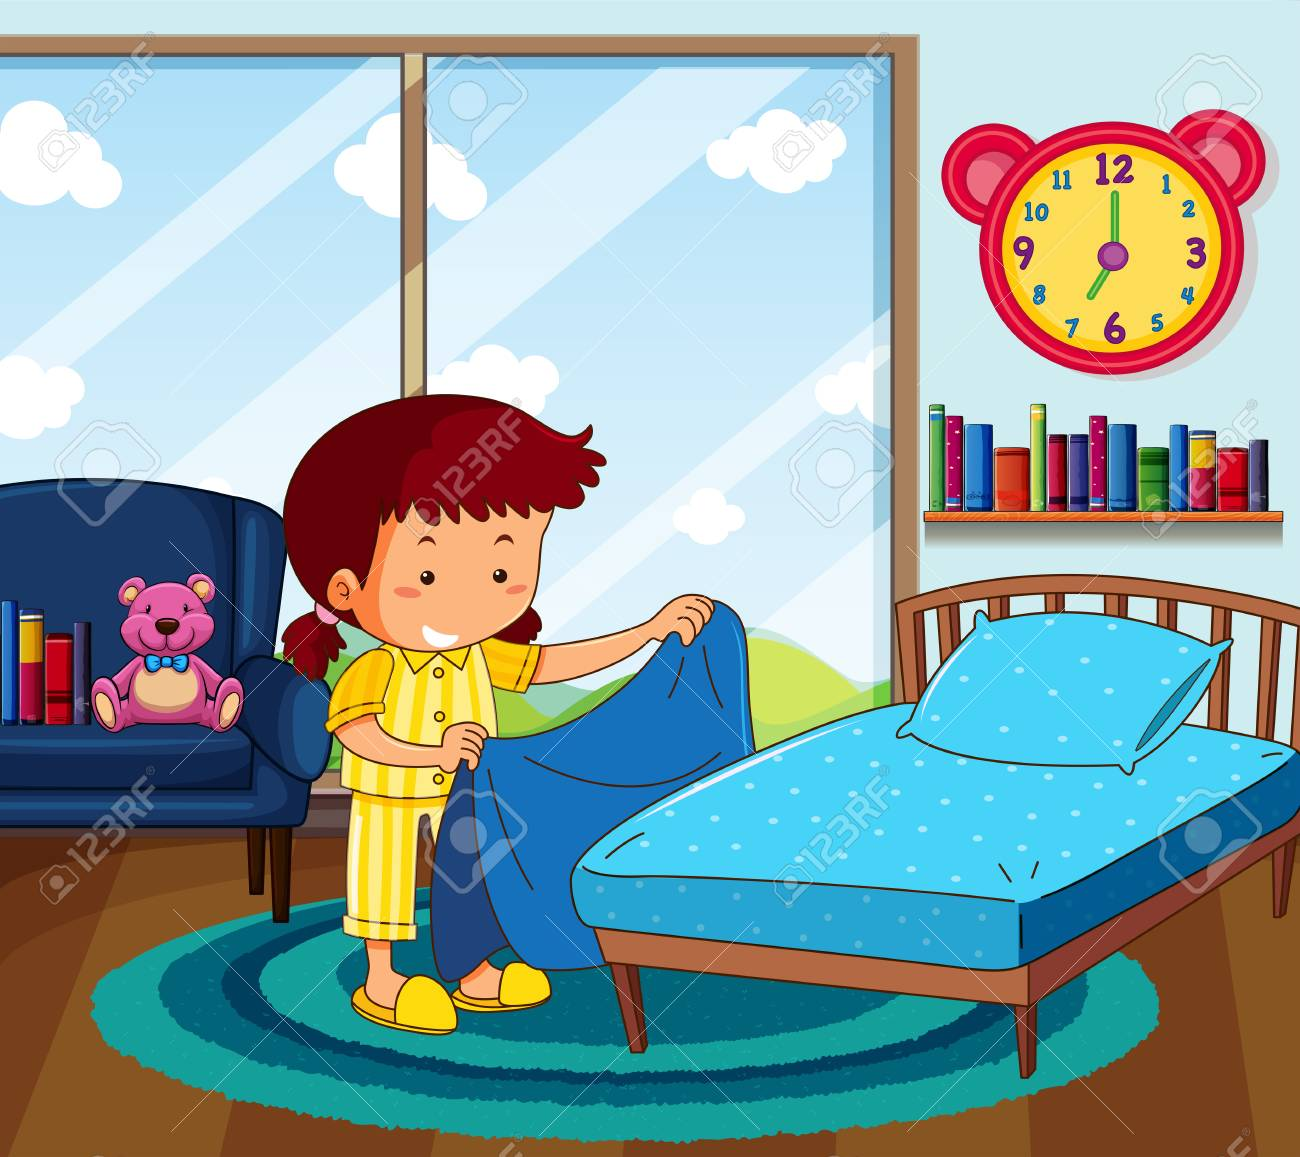 Girl in yellow pajamas making bed in bedroom illustration.